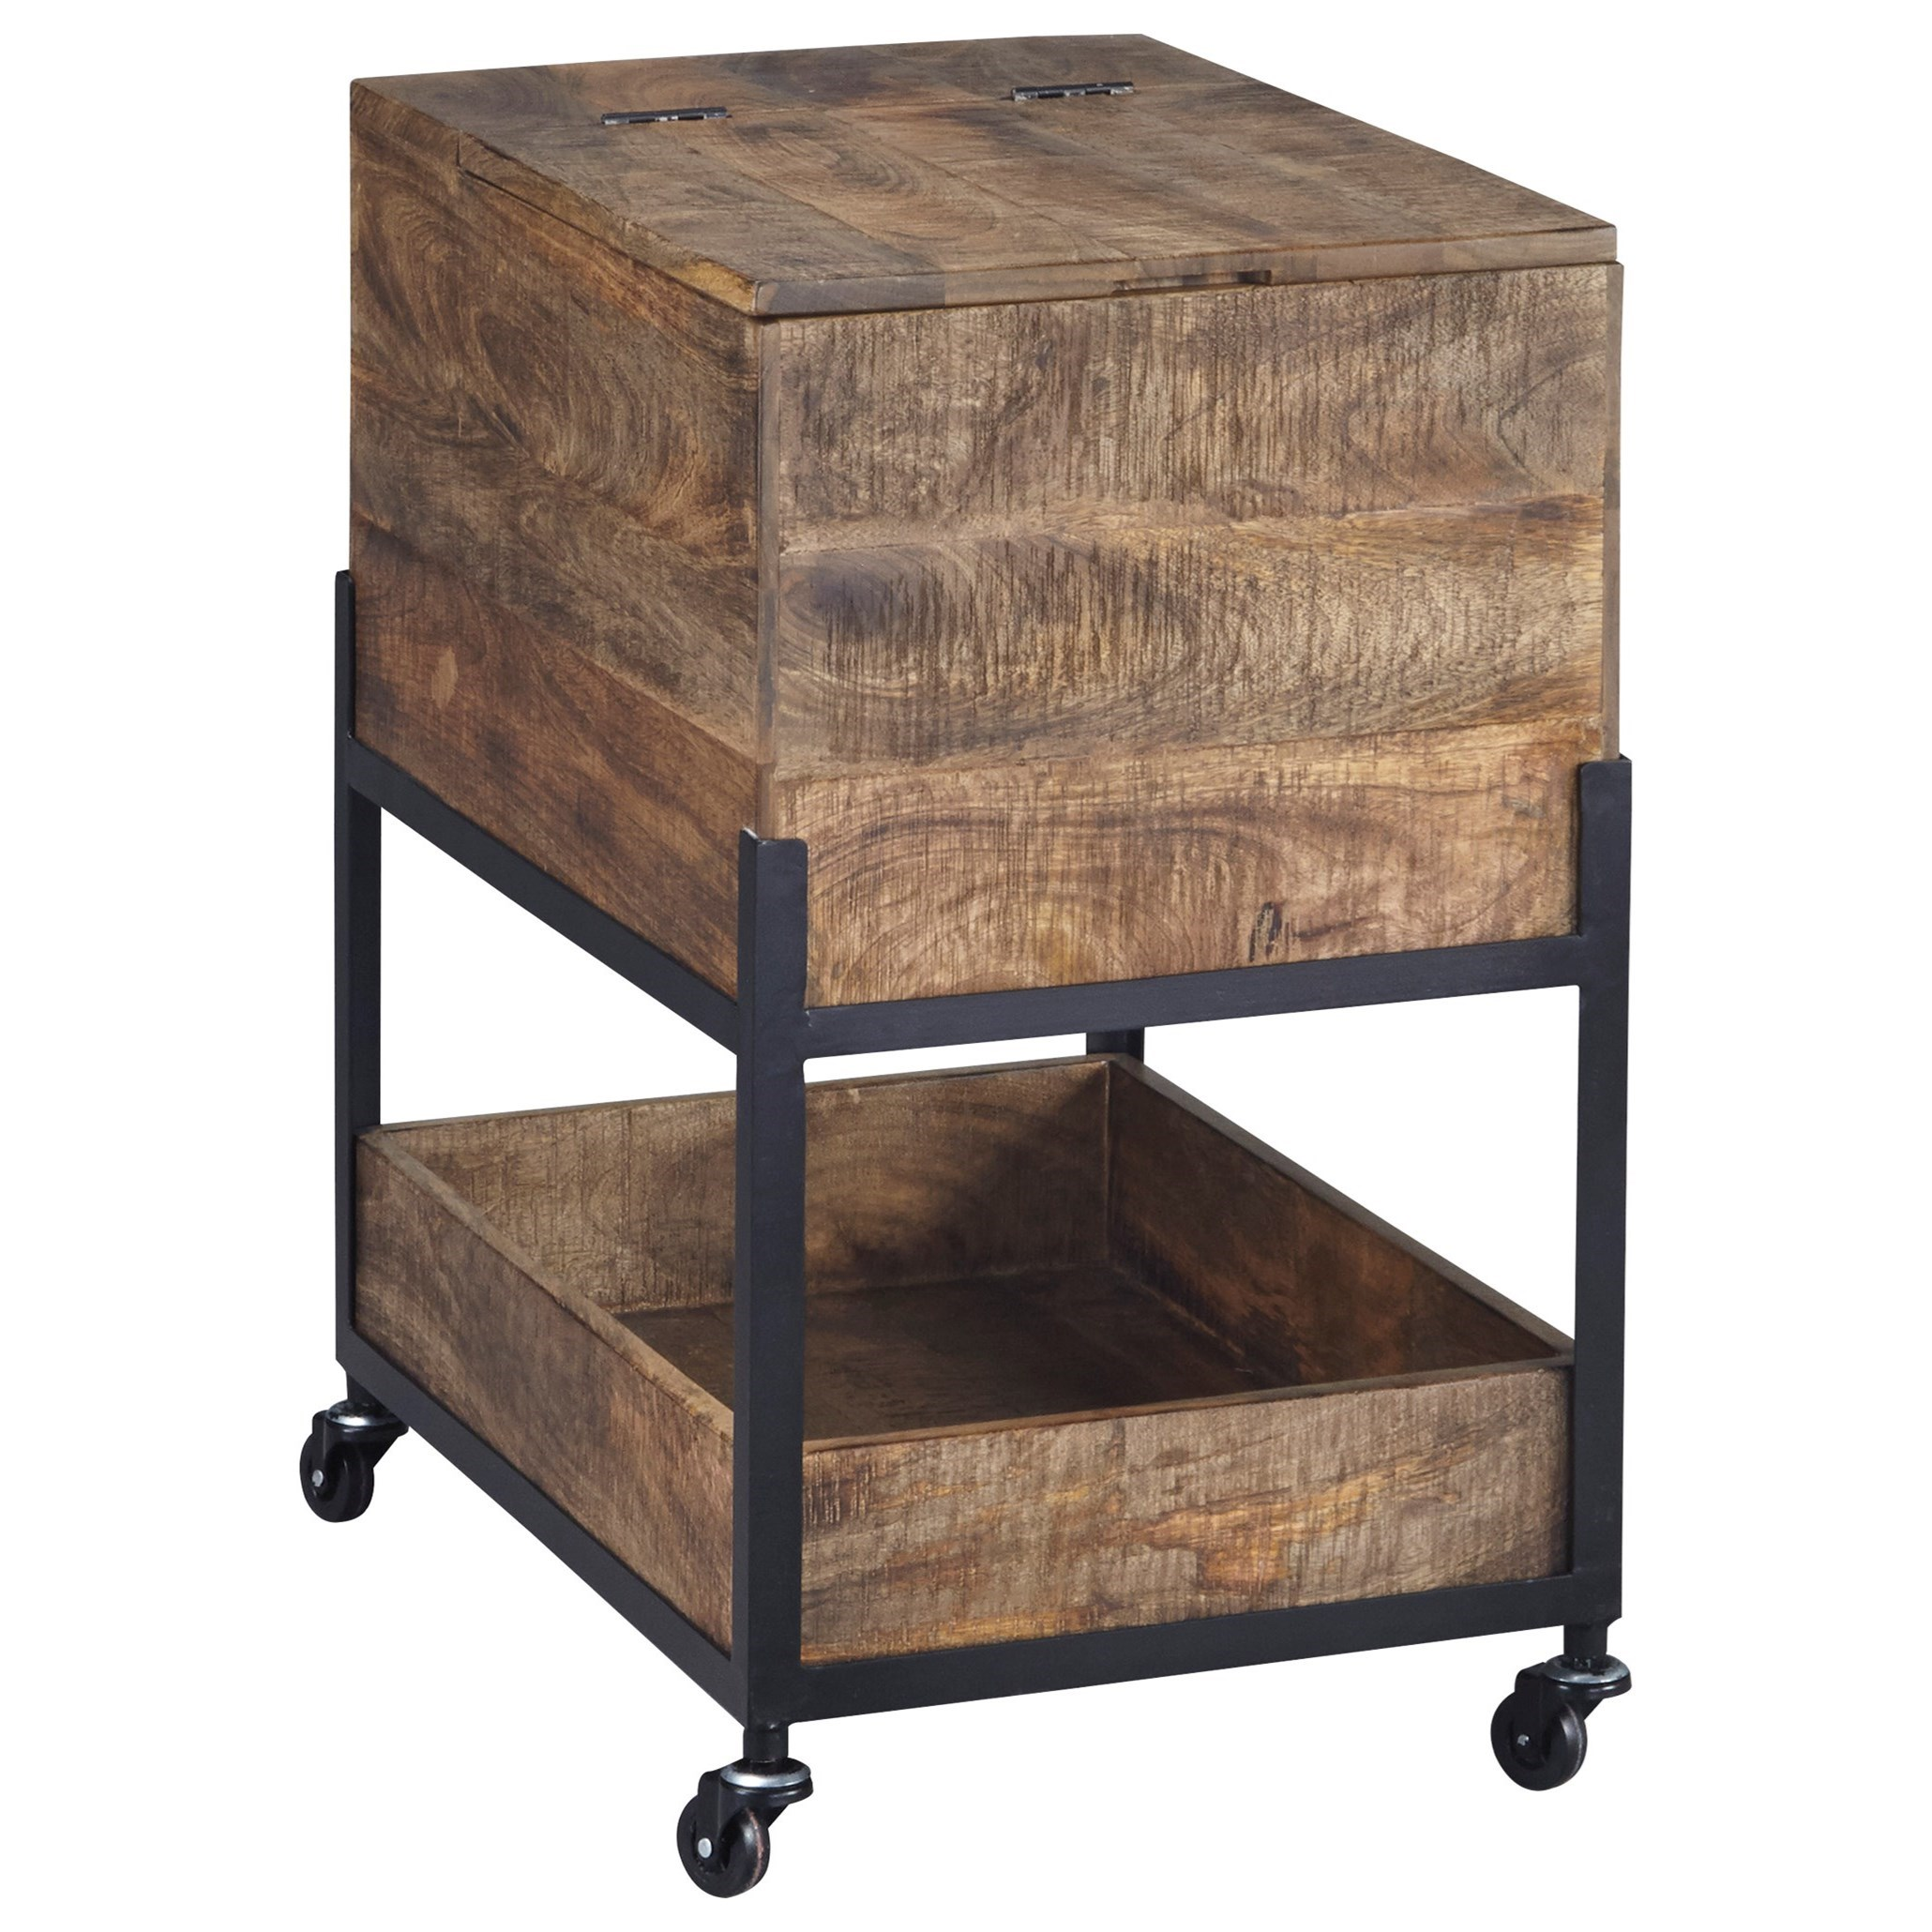 Incroyable Mango Wood/Metal File Cabinet With Casters U0026 Hinged Top